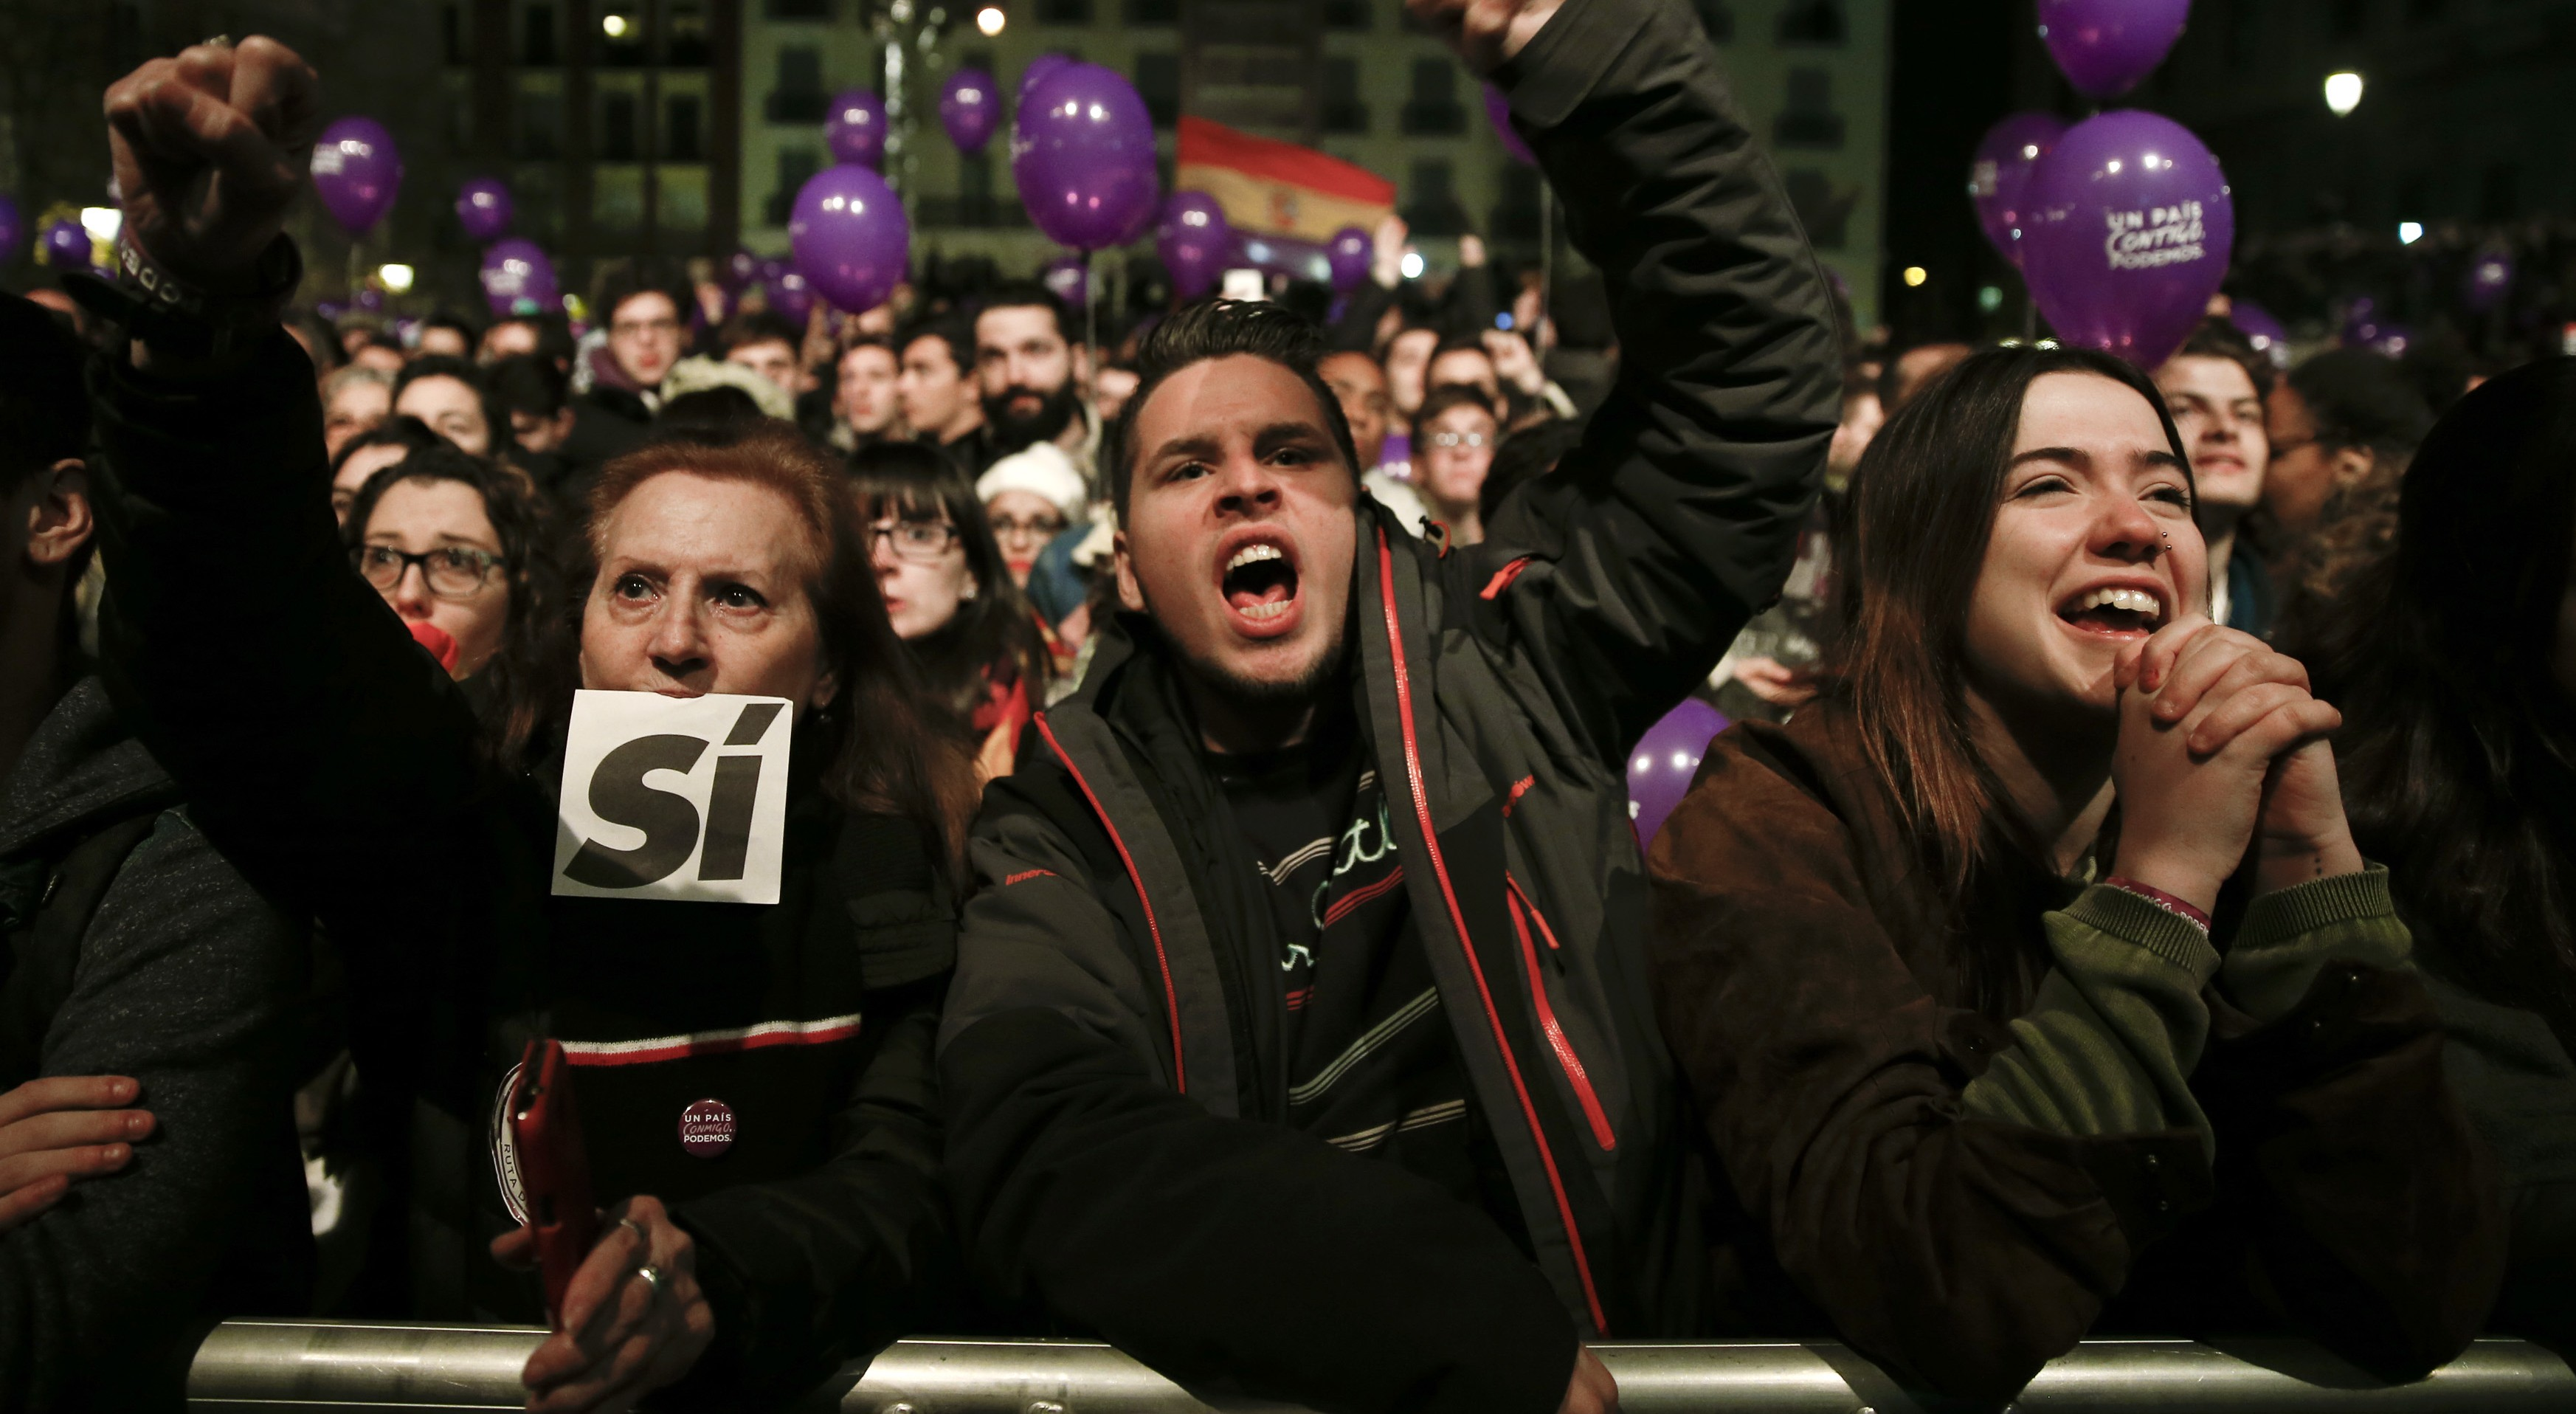 Podemos (We Can) party supporters react after results were announced in Spain's general election in Madrid, Spain, December 20, 2015.    REUTERS/Sergio Perez  - RTX1ZIV1